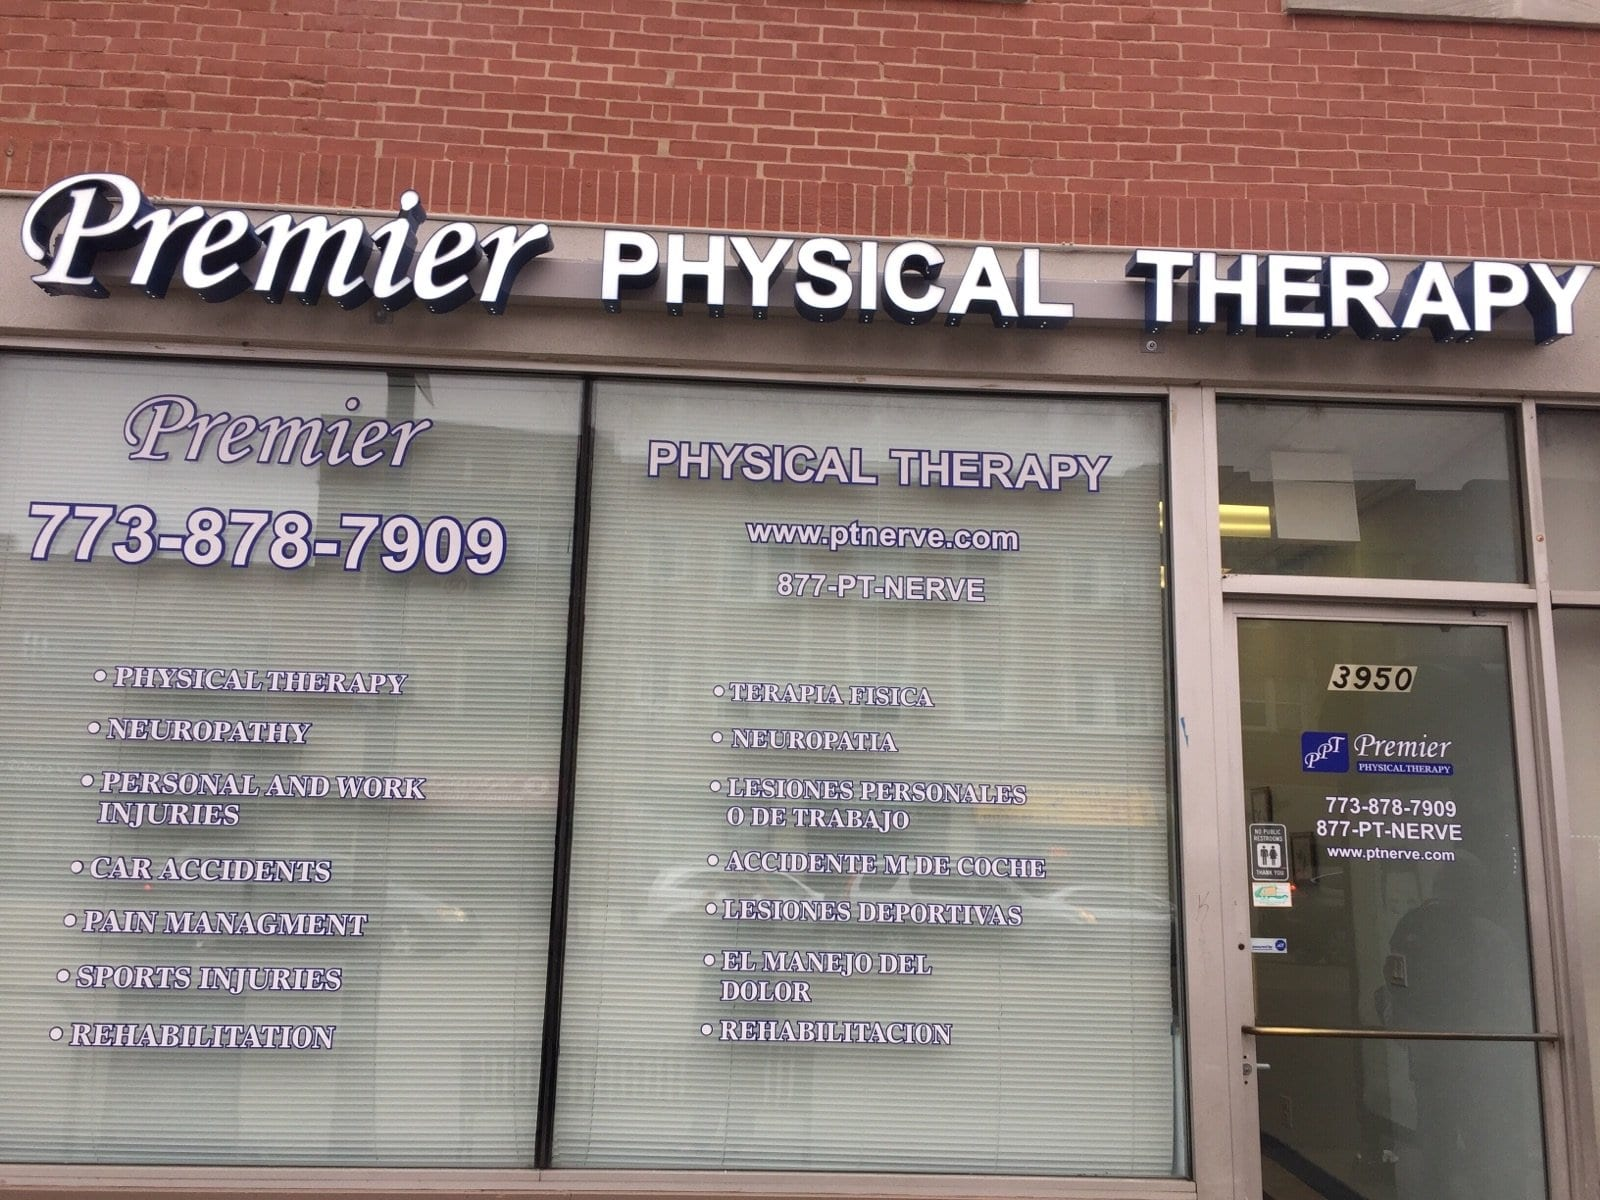 Physical Therapy in Munster, IL